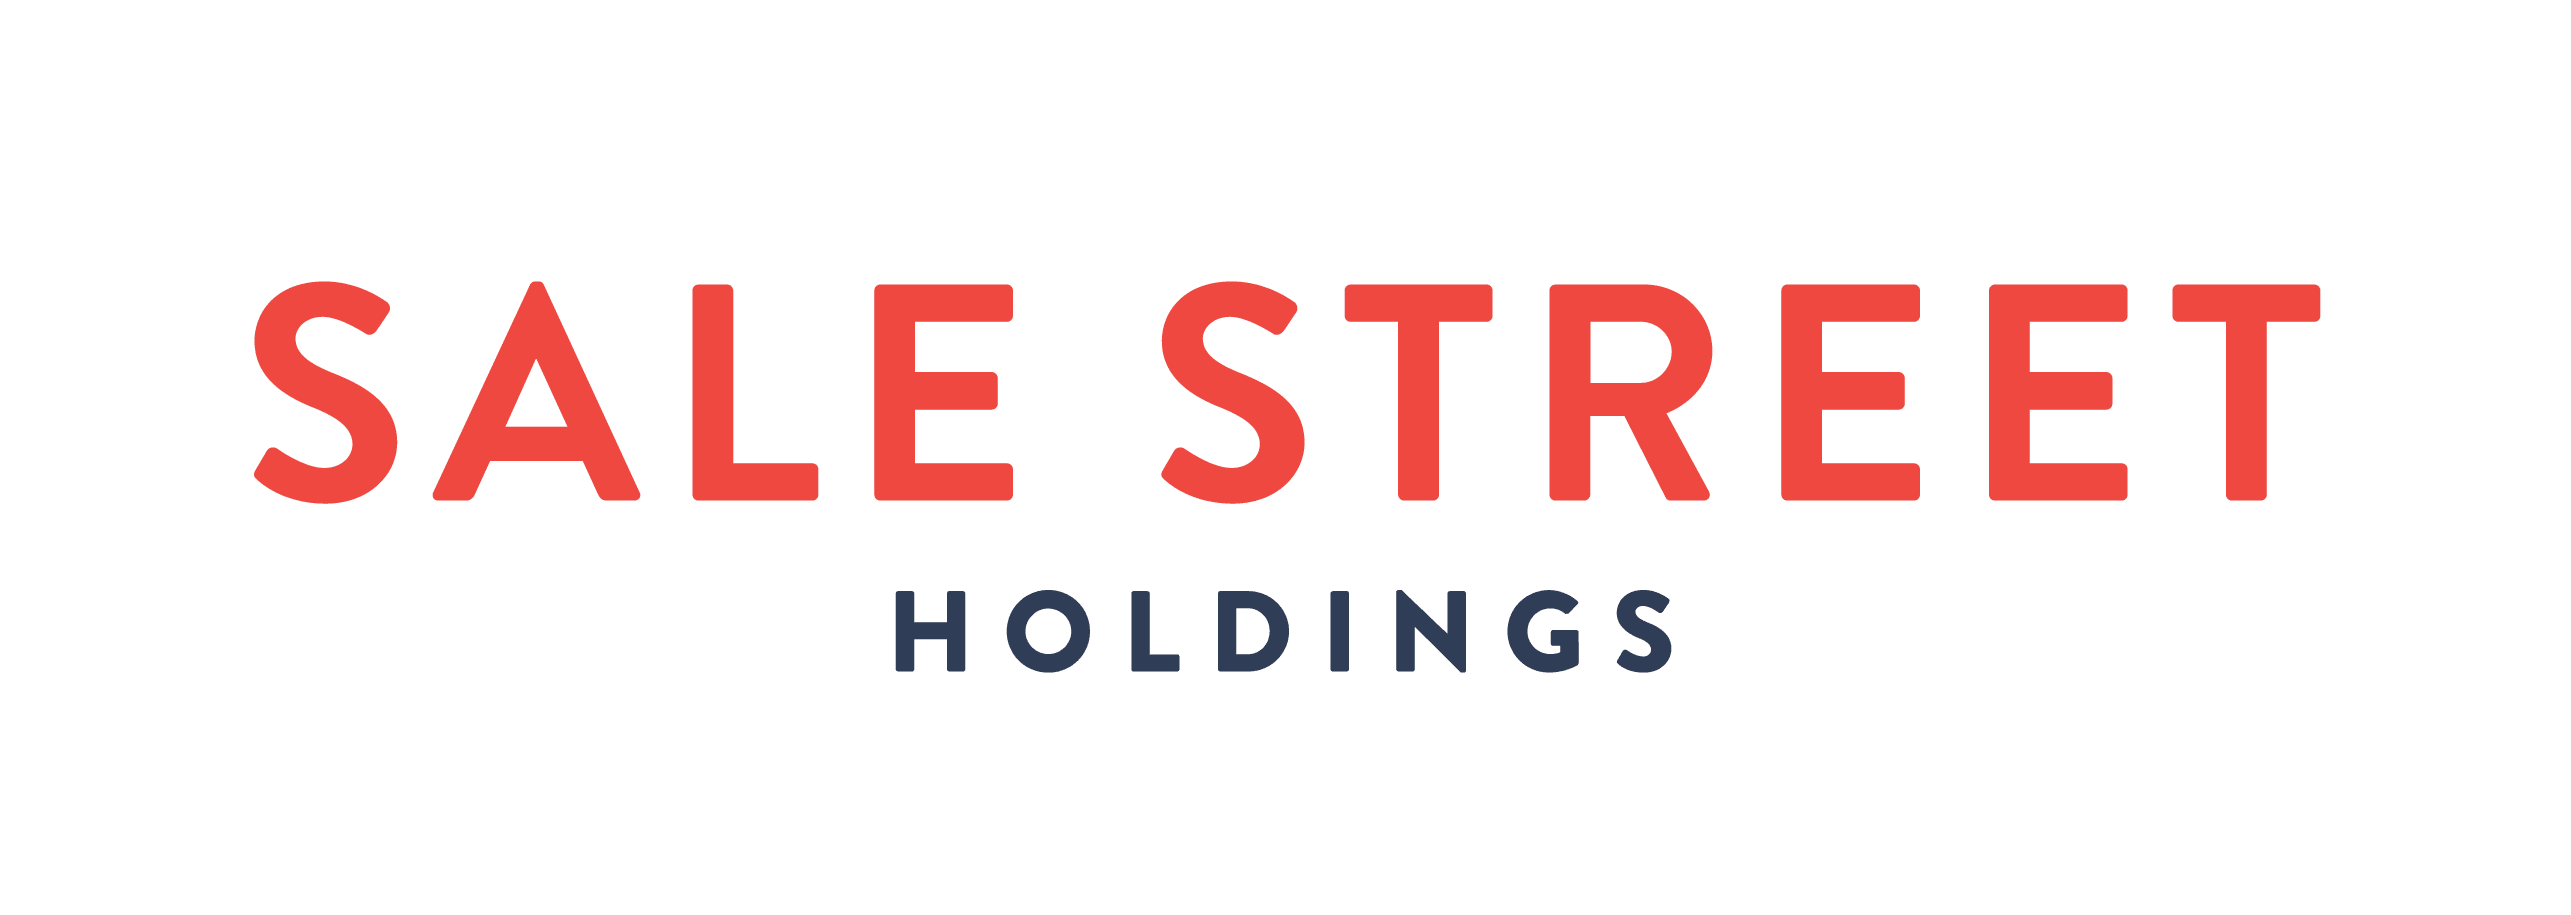 Sale Street Holdings